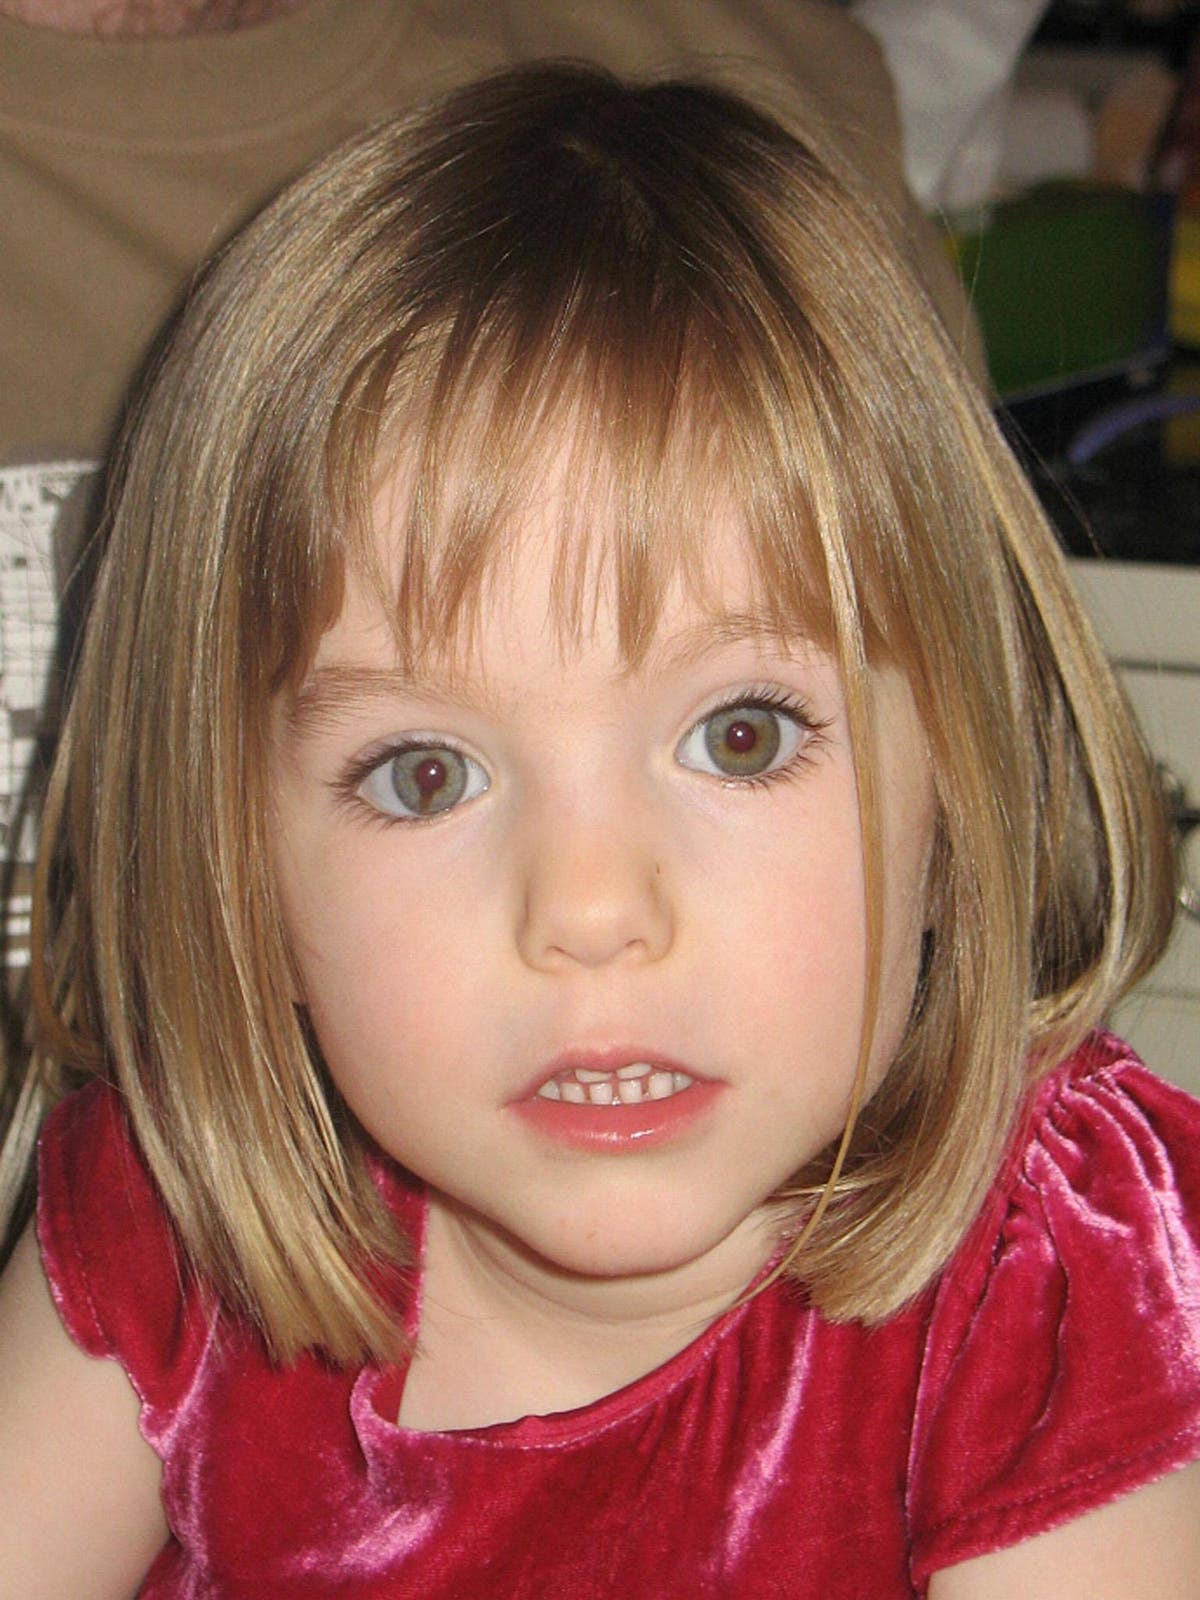 Madeleine McCann disappearance 'could be solved within months,' prosecutor says